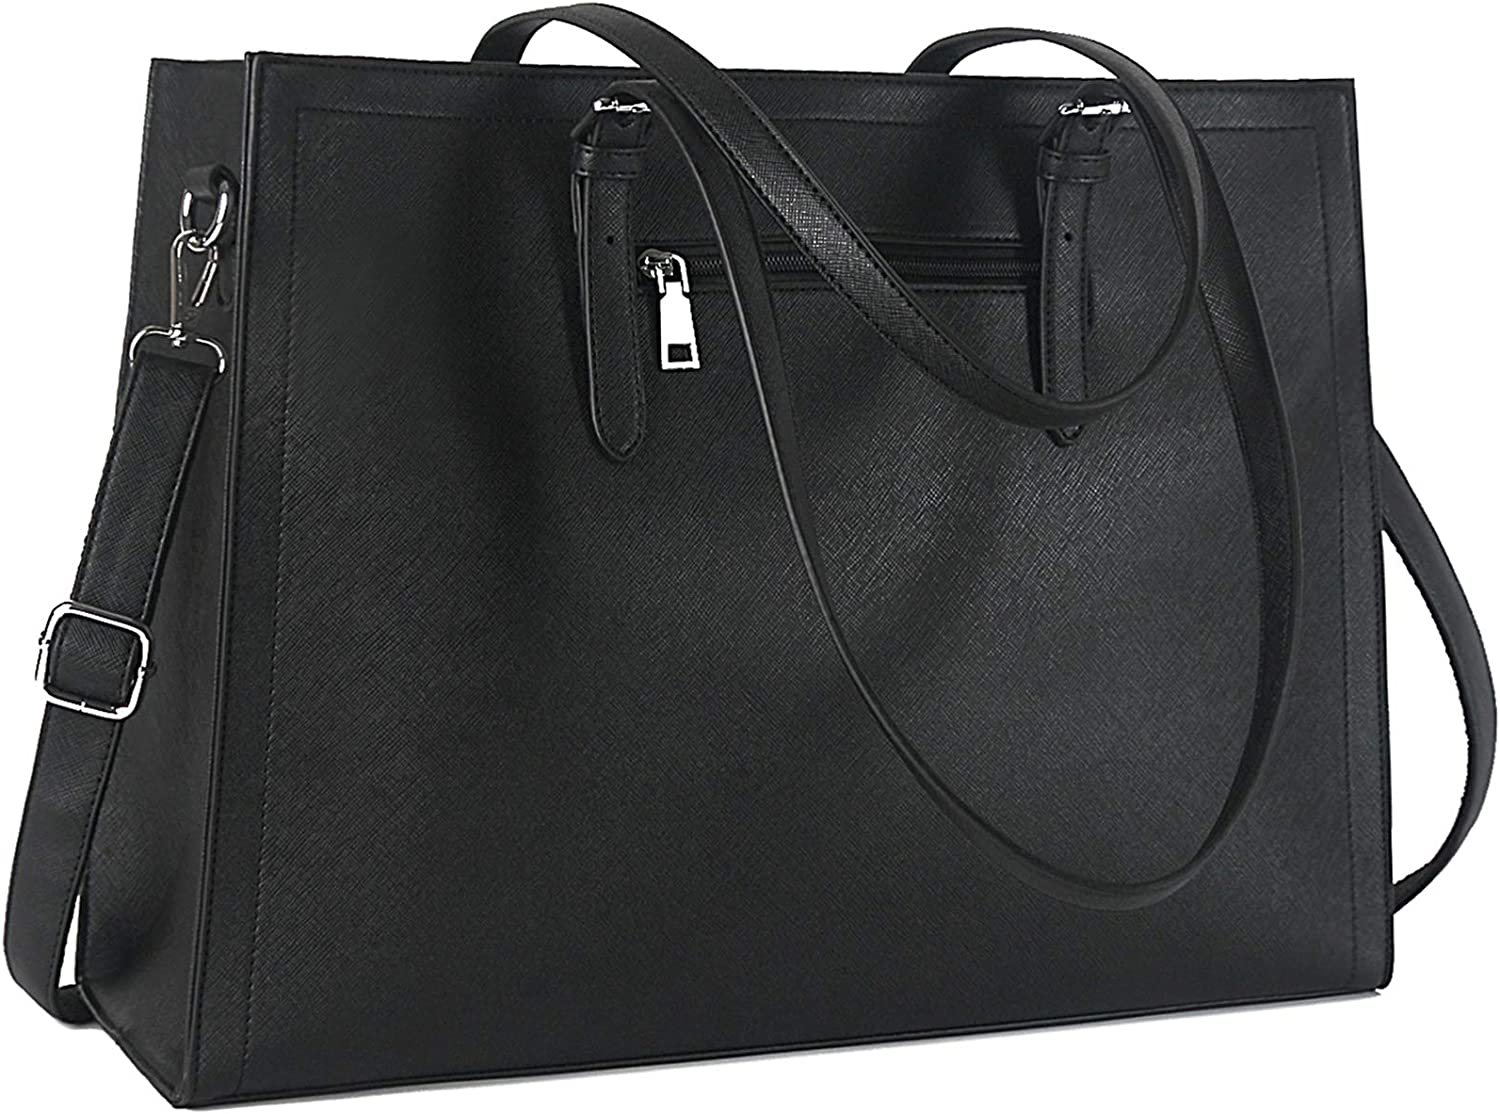 Laptop Bag for Women 15.6 Inch Classy Leather Computer Bag Office Work Tote Bag